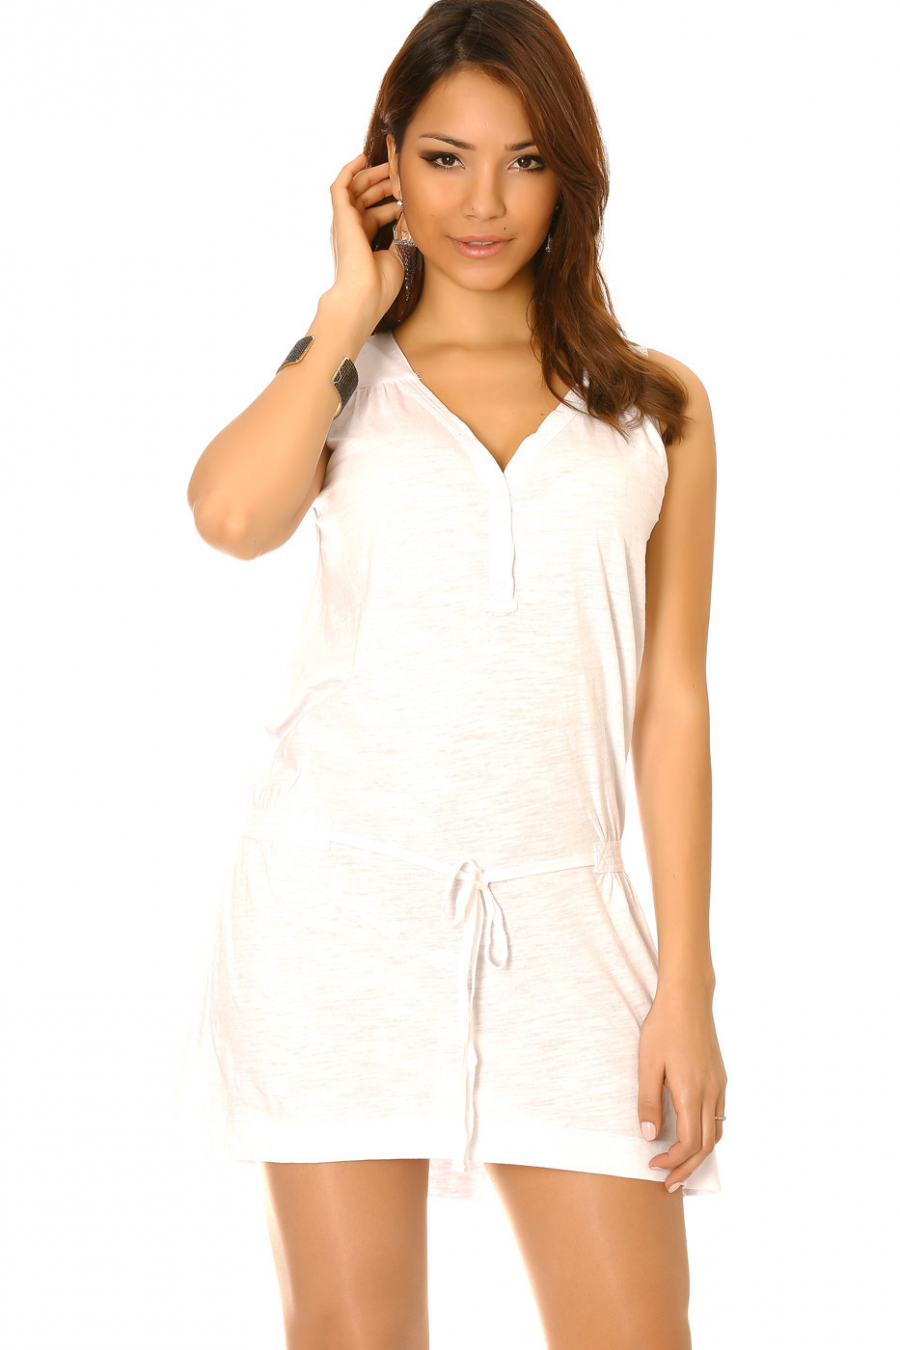 White V-neck tennis dress with buttons at the collar and lace belt. Tennis dress 926